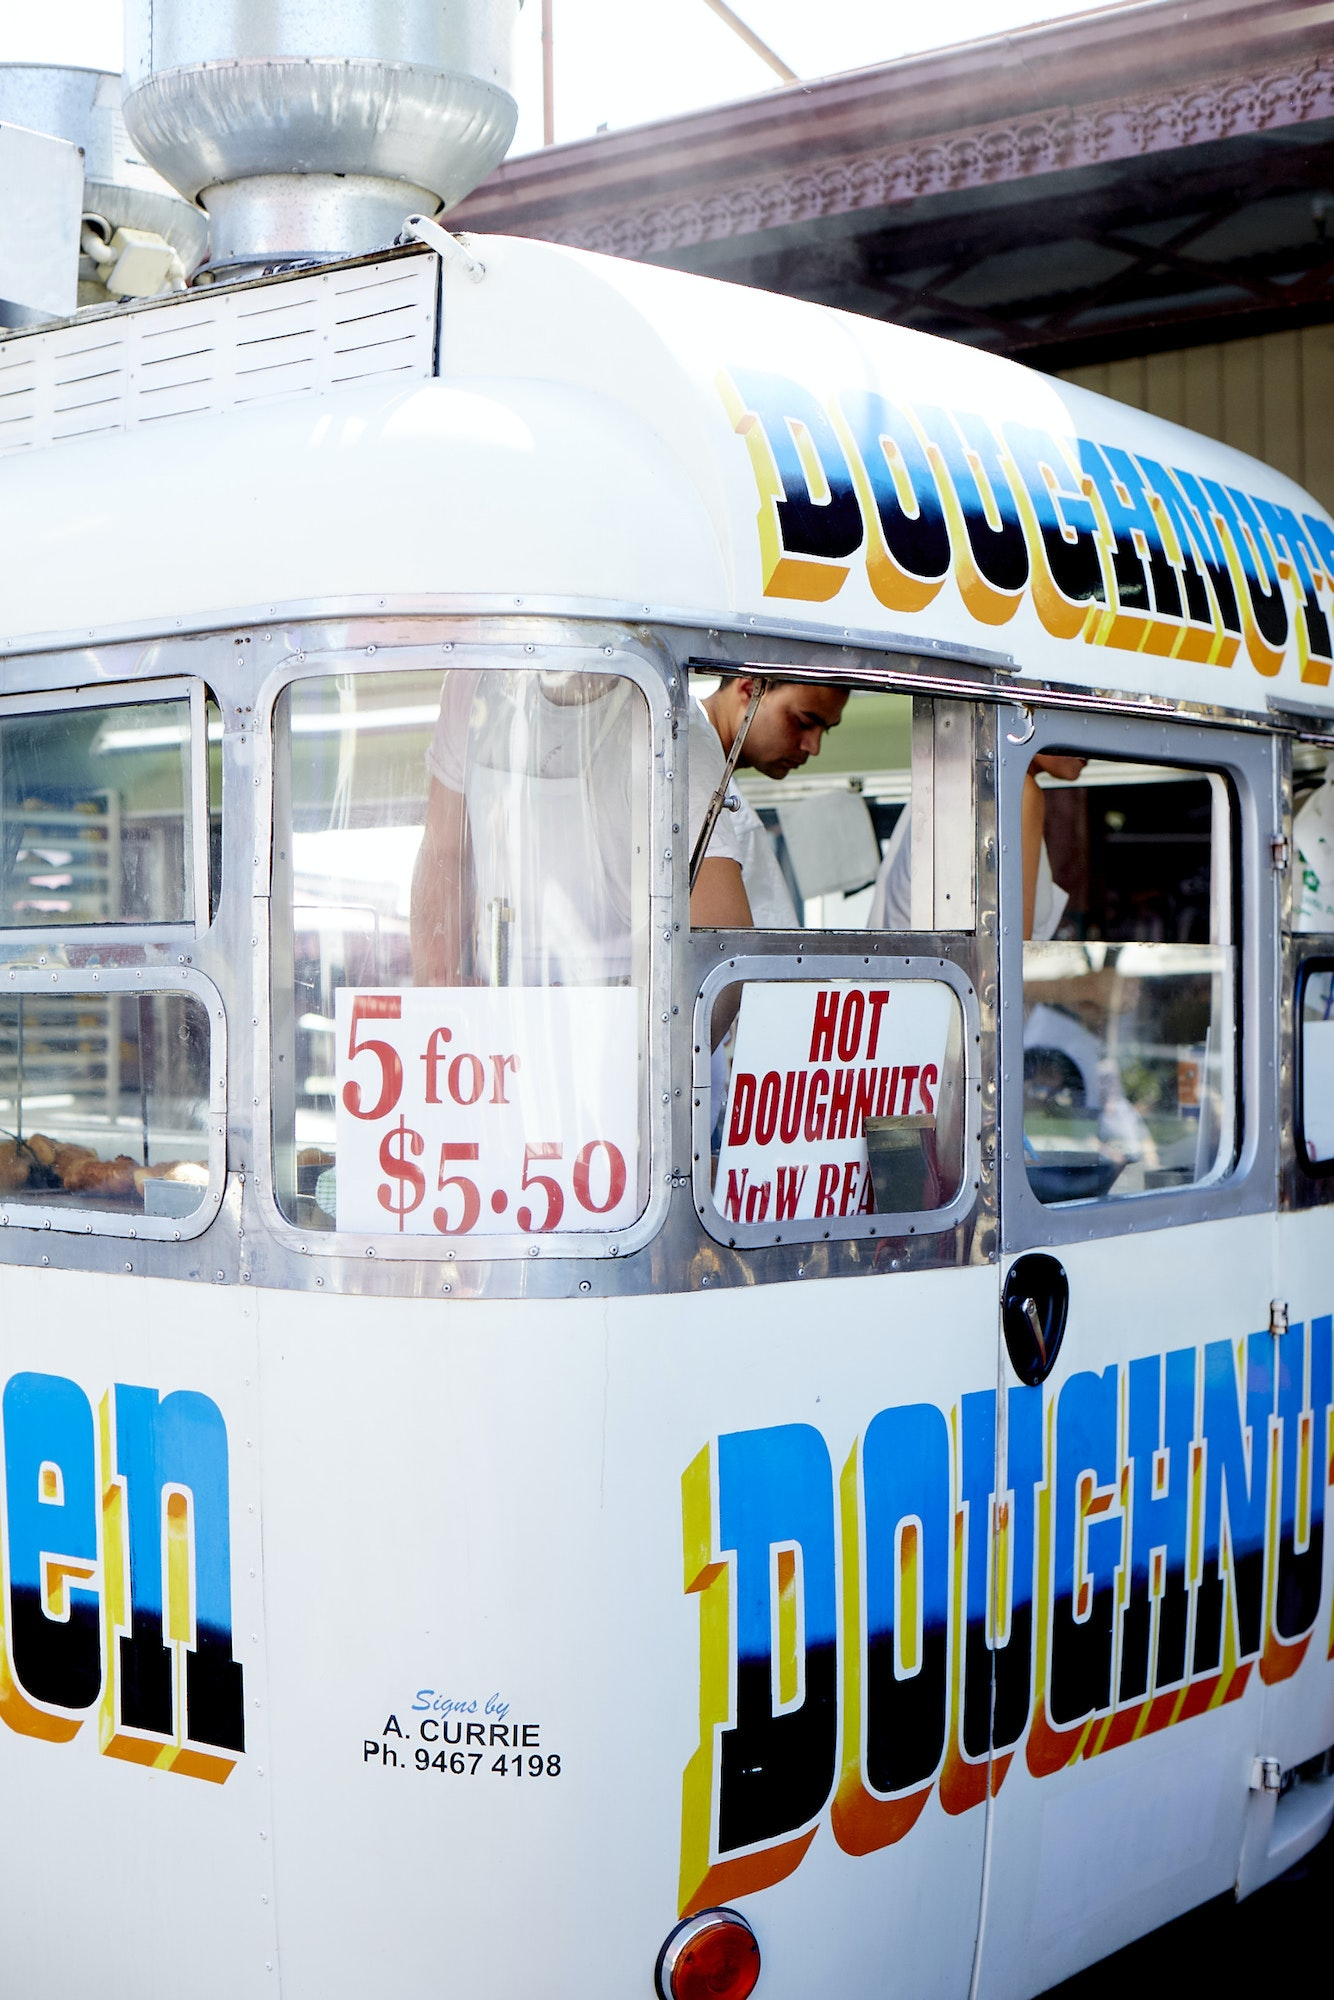 American doughnuts get an Austalian twist in the food truck at Queen Victoria Market.